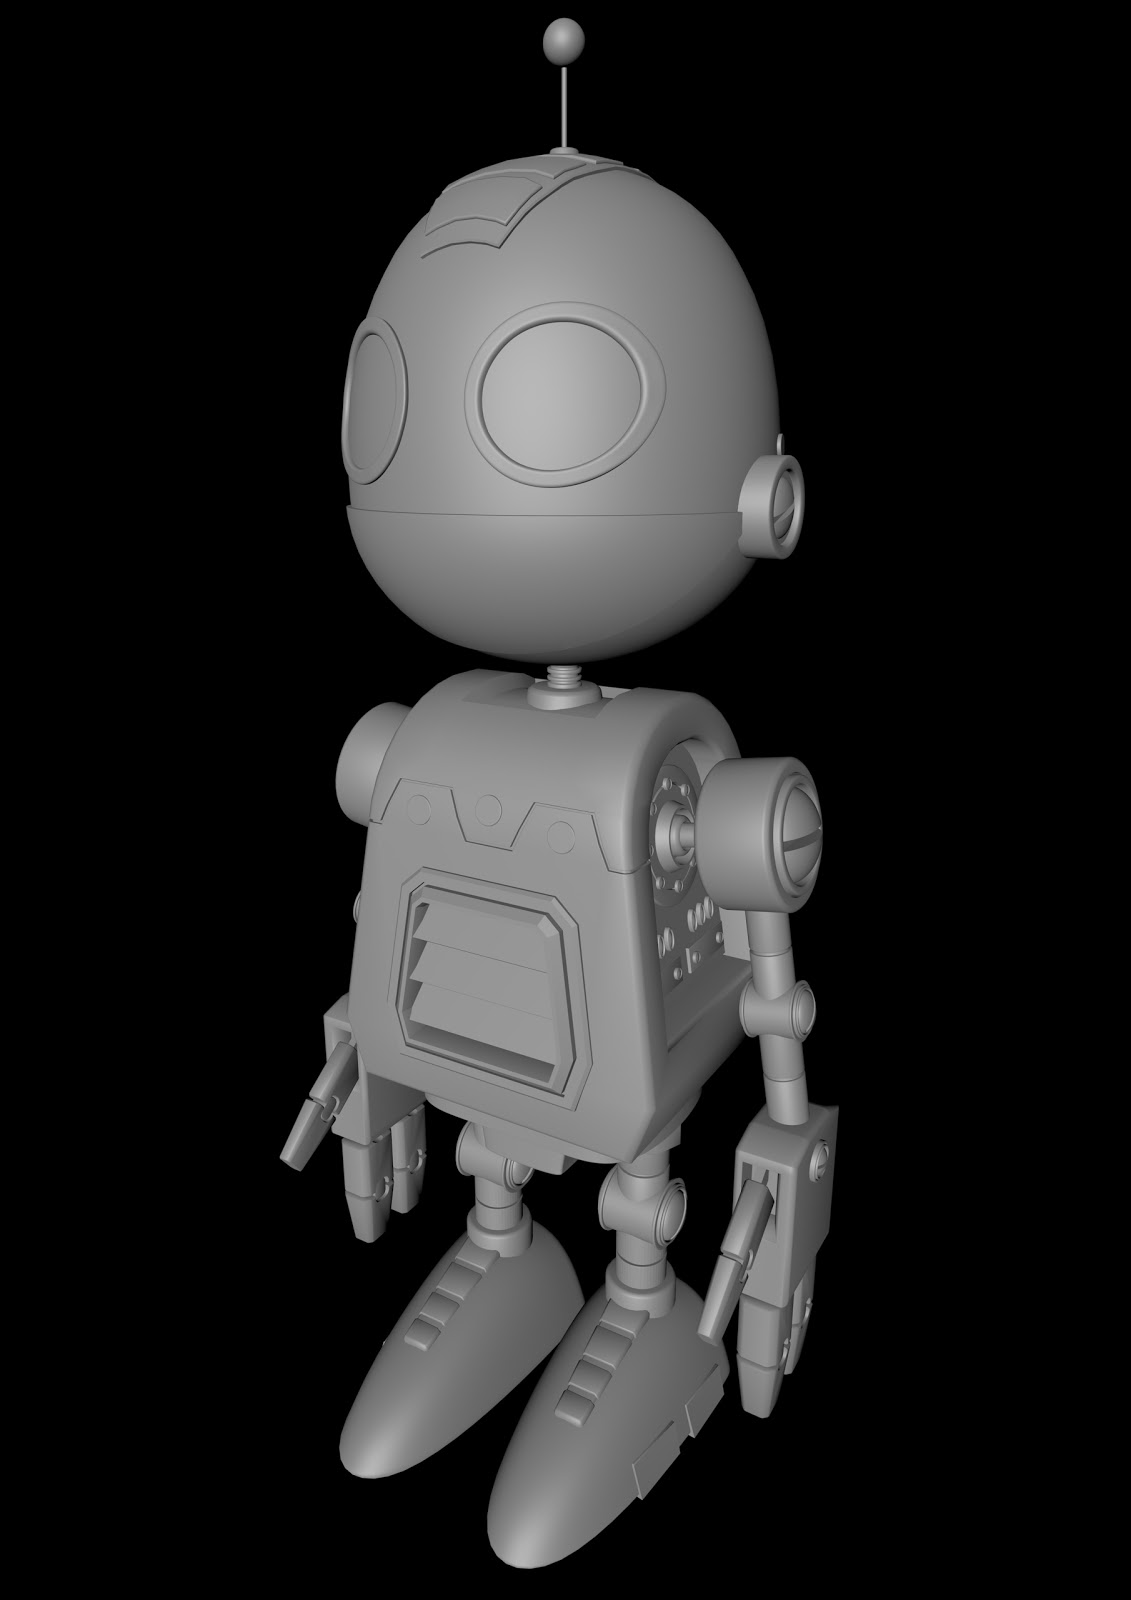 Character Design Cinema 4d Tutorial : Kaye s design cinema d modeling robot